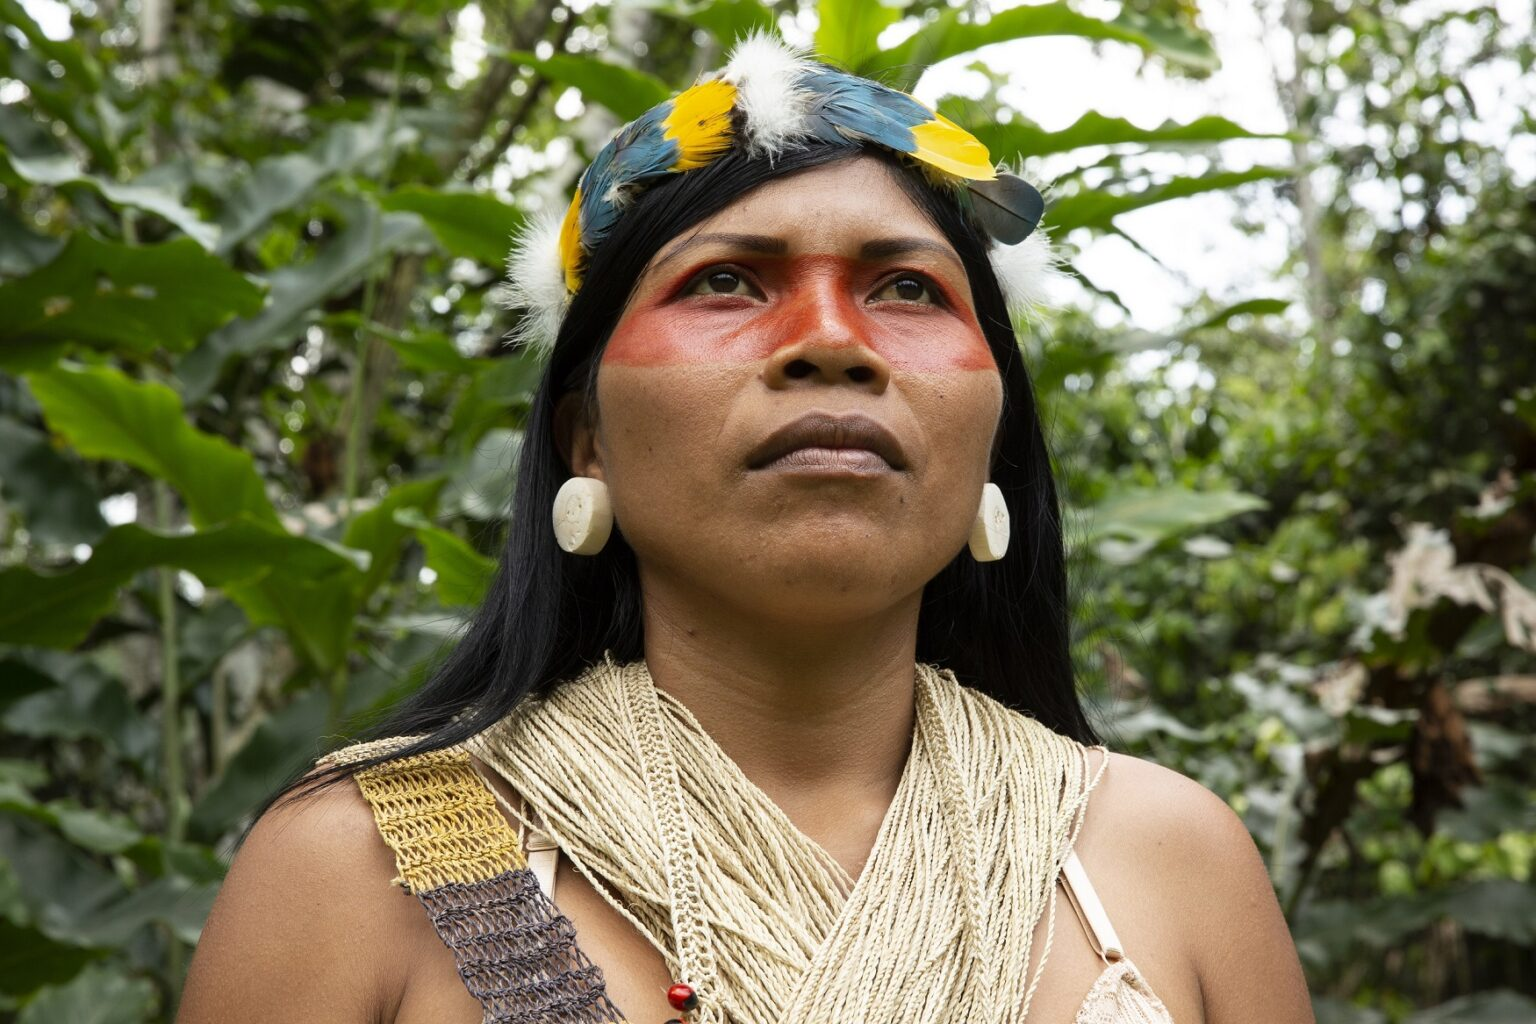 Two indigenous women in Latin America honored with top prize for environmental protection